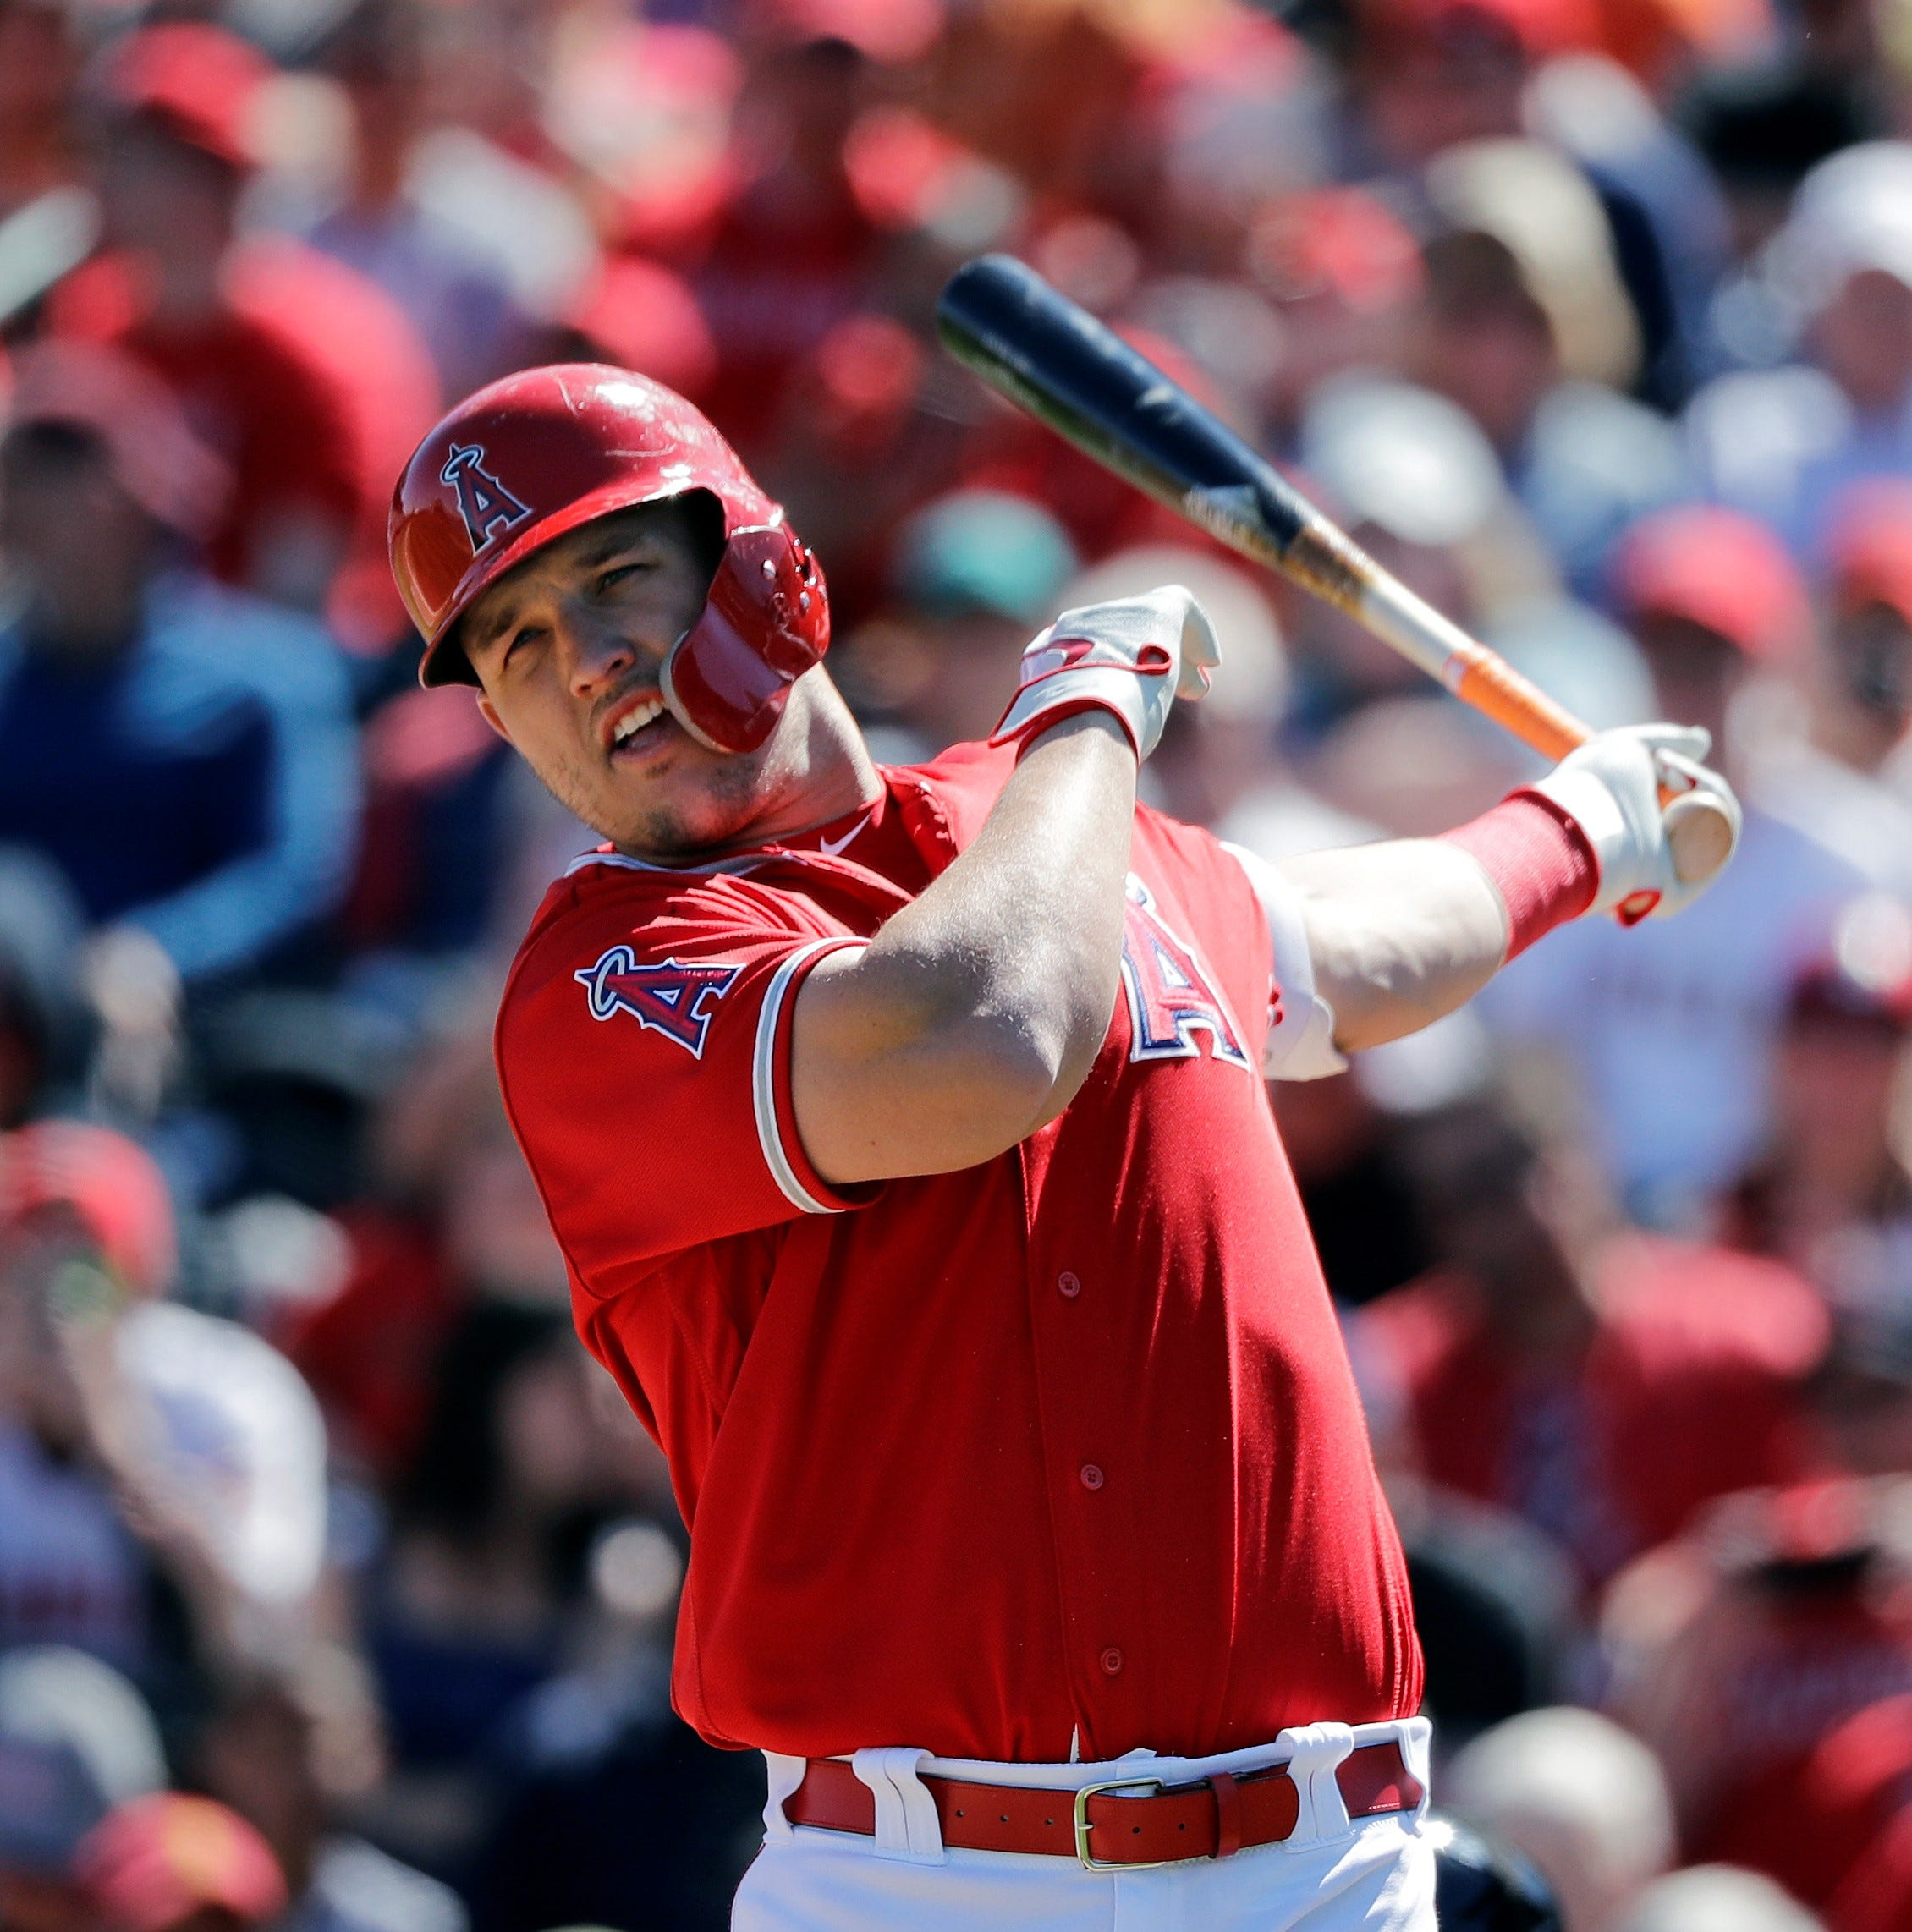 Bad news for Phillies fans: Mike Trout reportedly agrees to $430 million deal with Angels